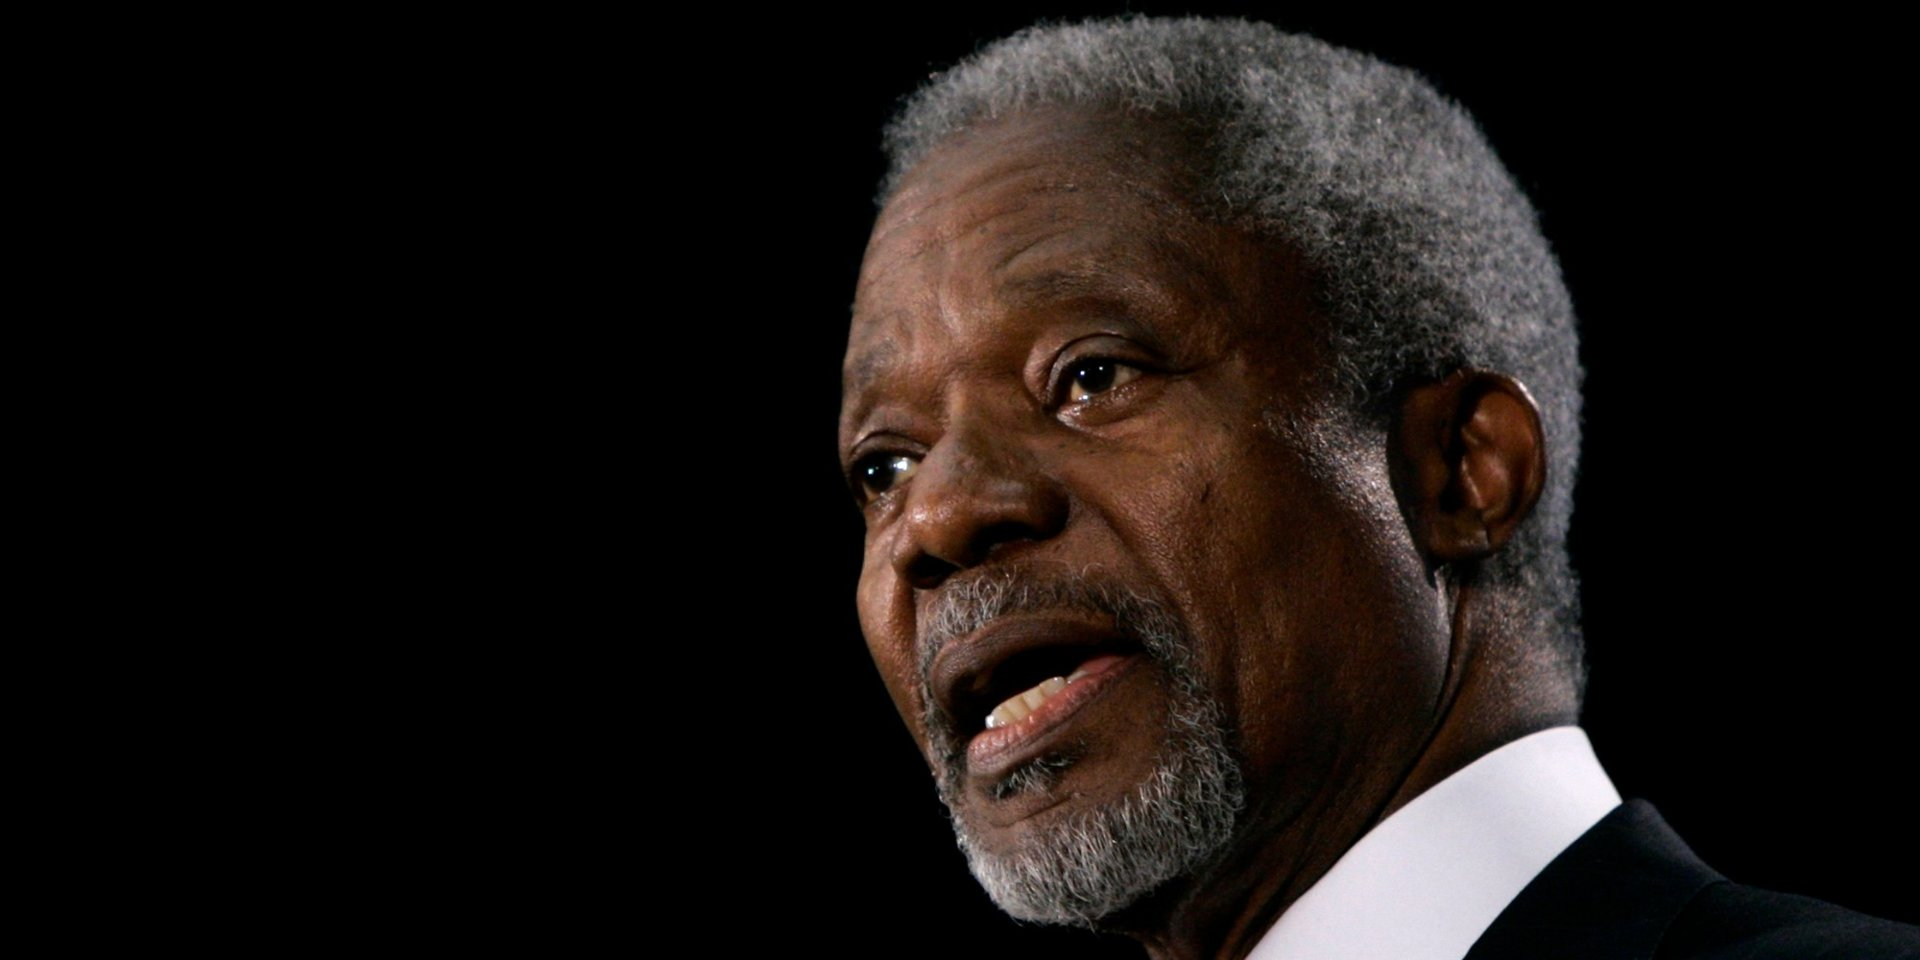 Former UN chief and Nobel peace laureate Kofi Annan died Saturday August 18, 2018, at the age of 80